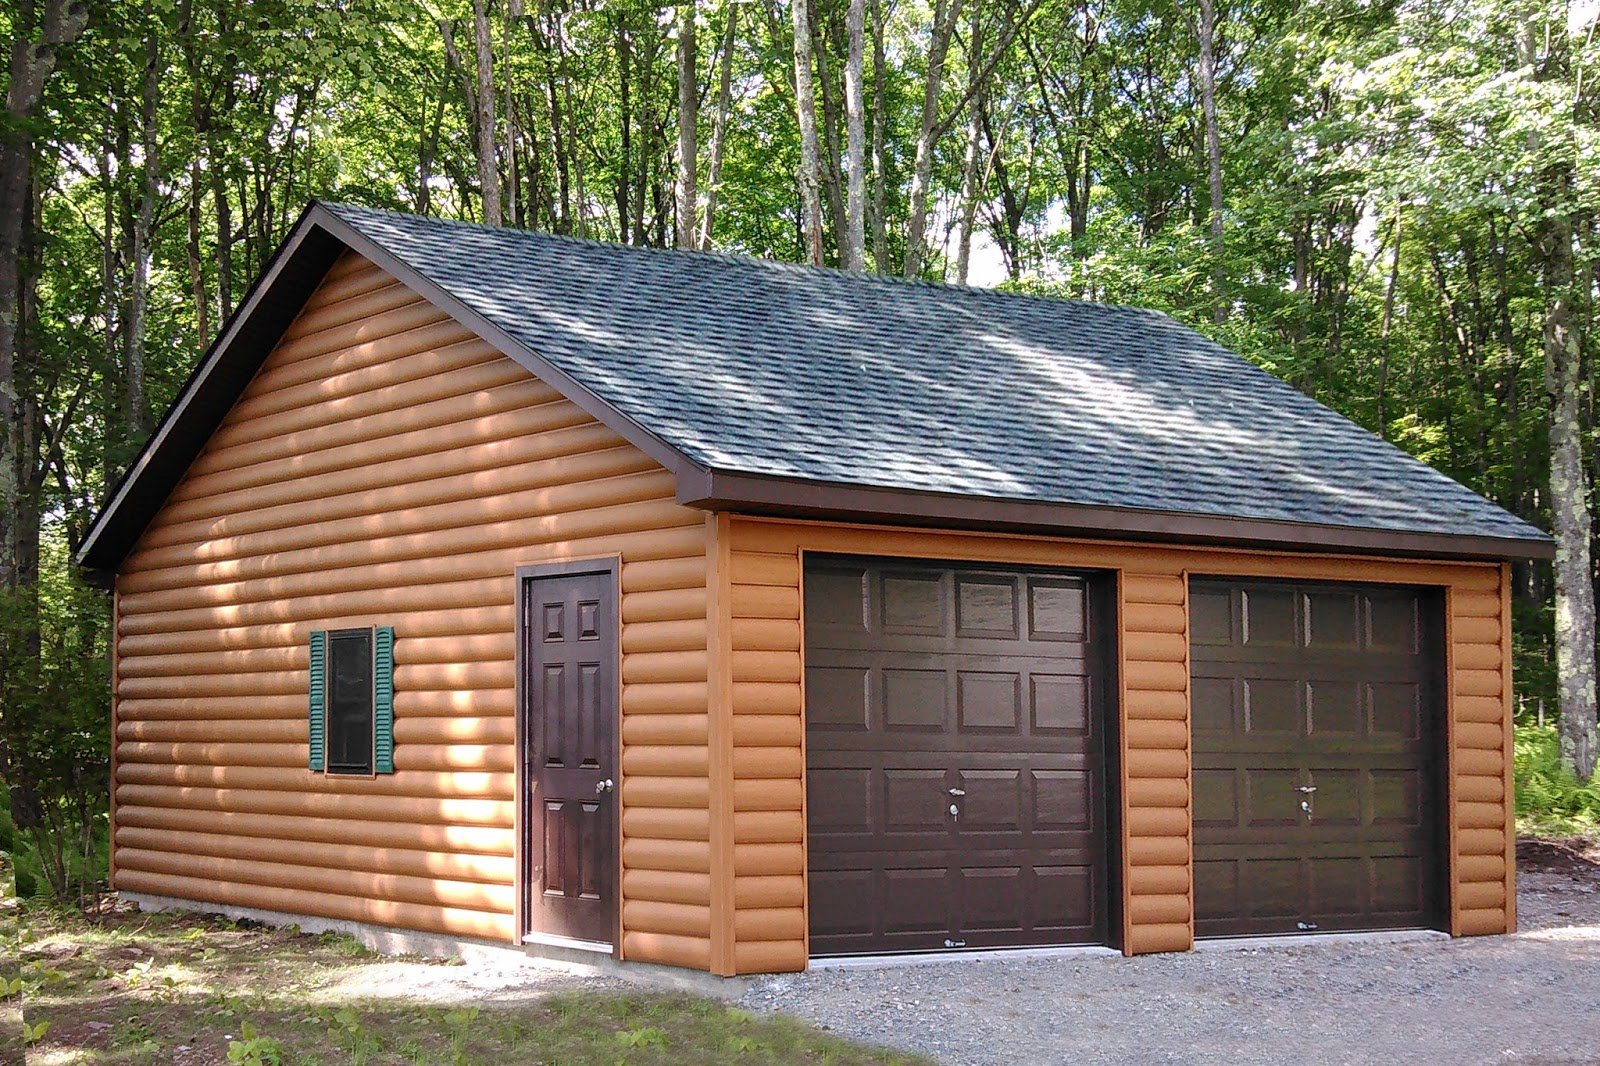 Prefab car garages for sale in pa nj ny ct de md va for Double story garage